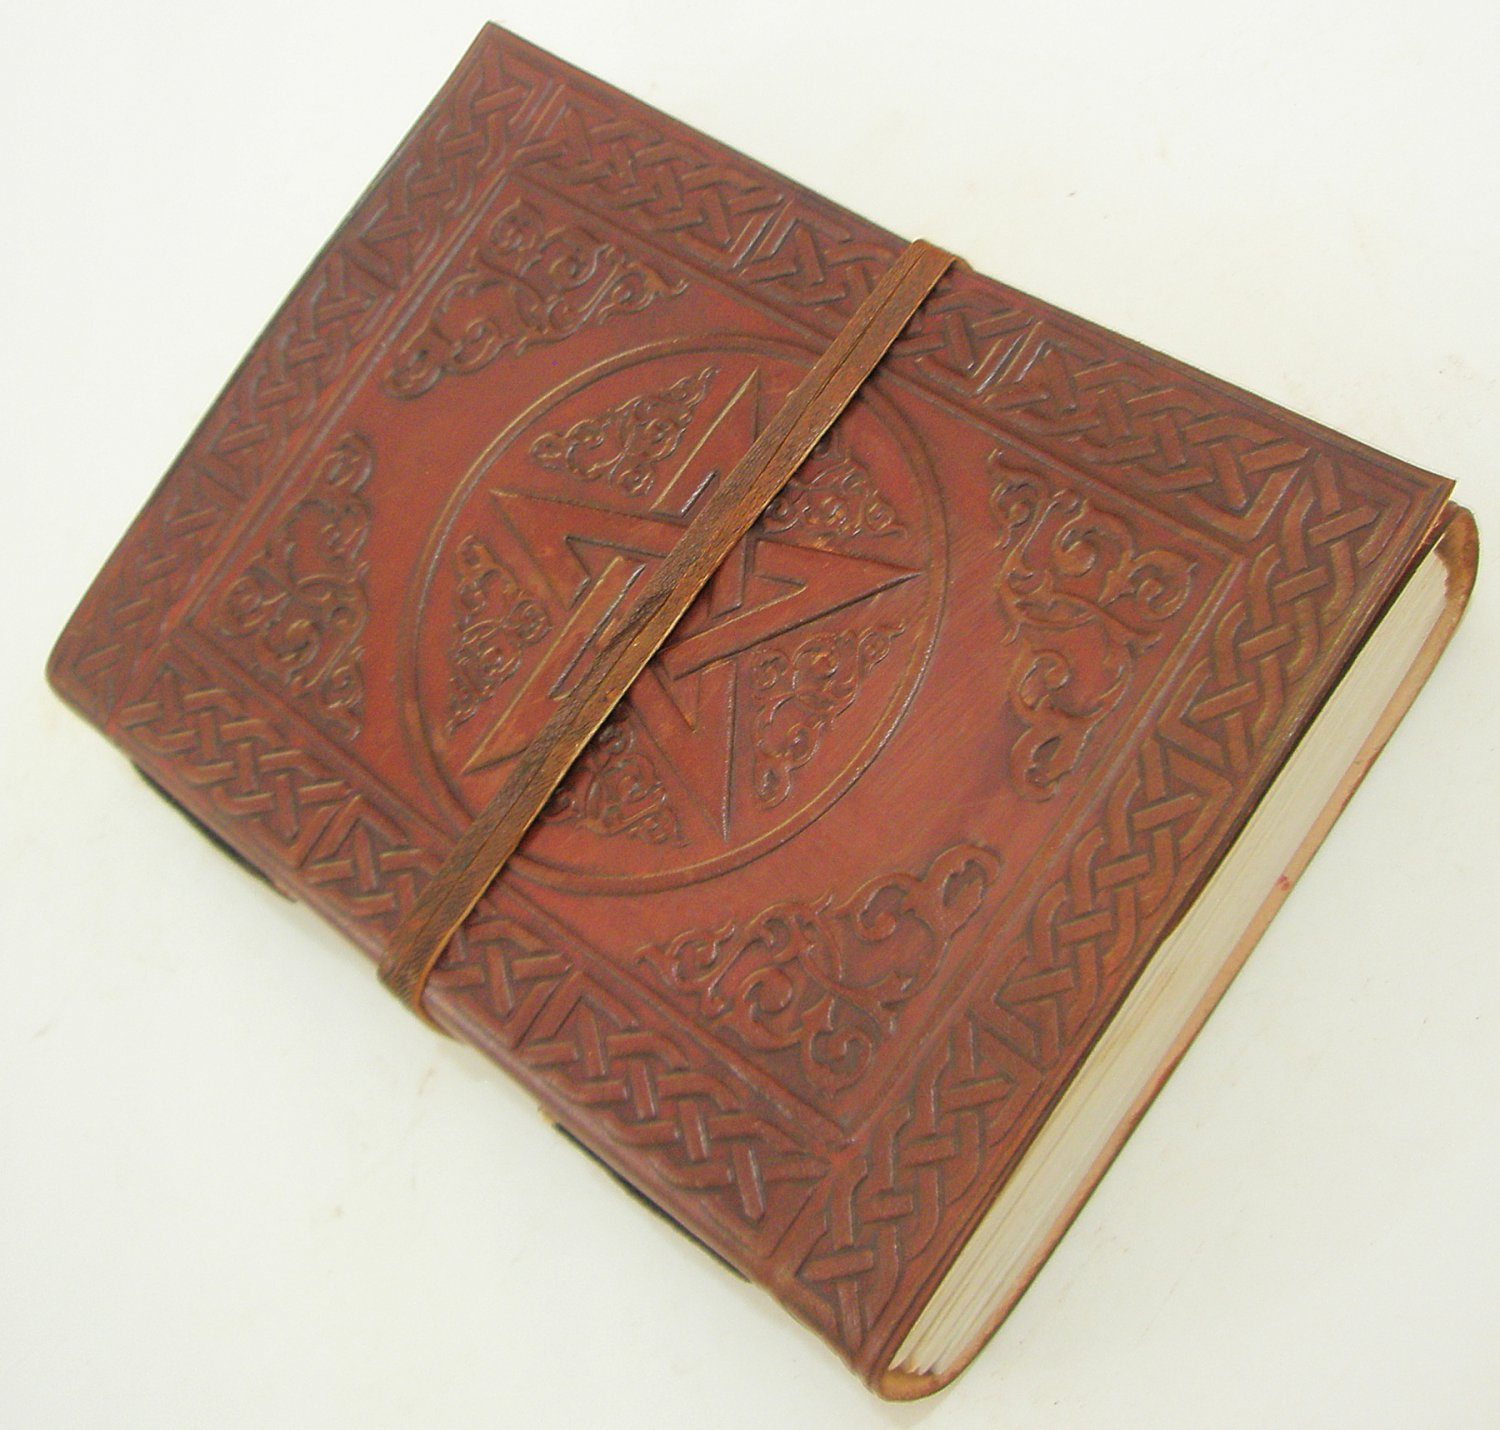 Natural Paper Handmade Leather Bound Celtic Pentagram Blank Journal Diary Embossed Writing Notebook